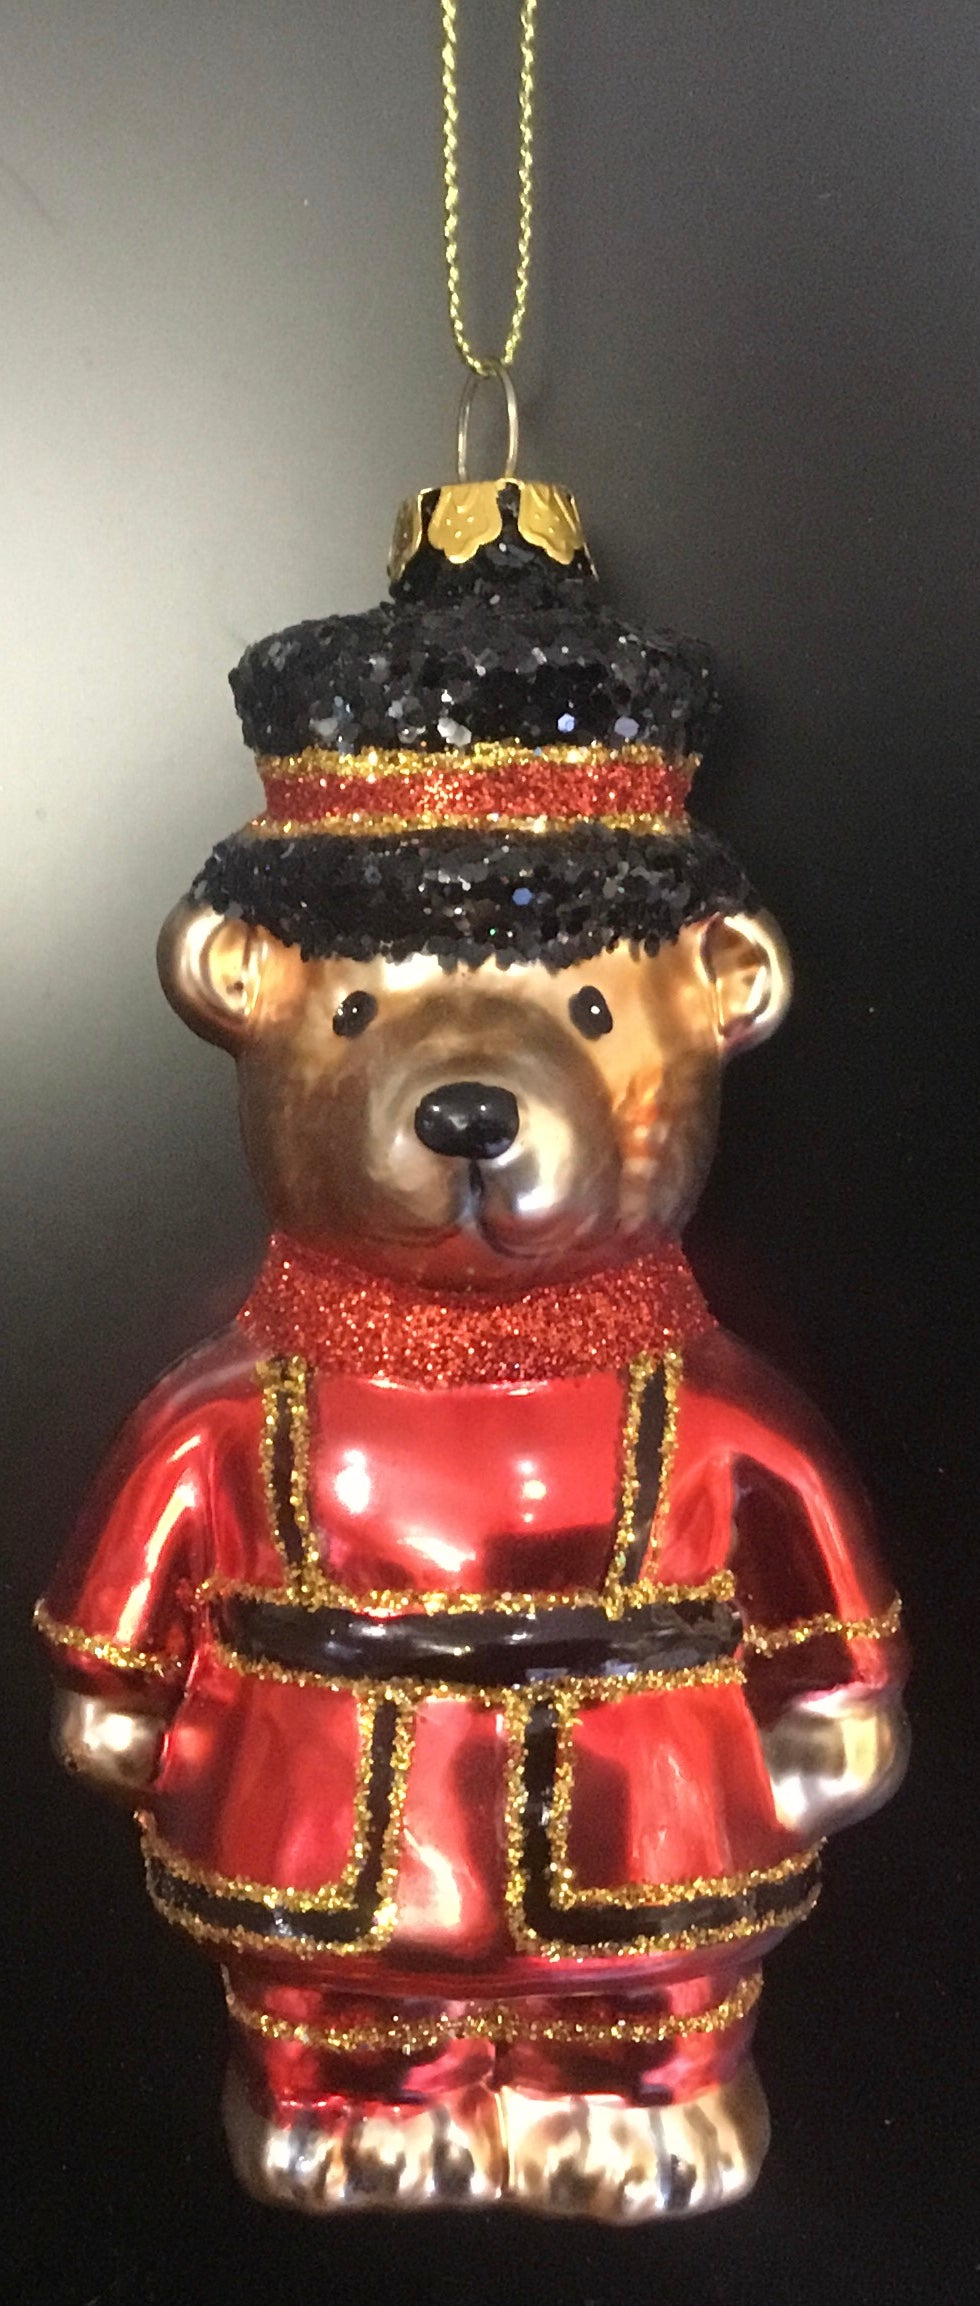 Beefeater Teddybear with black glitter hat.